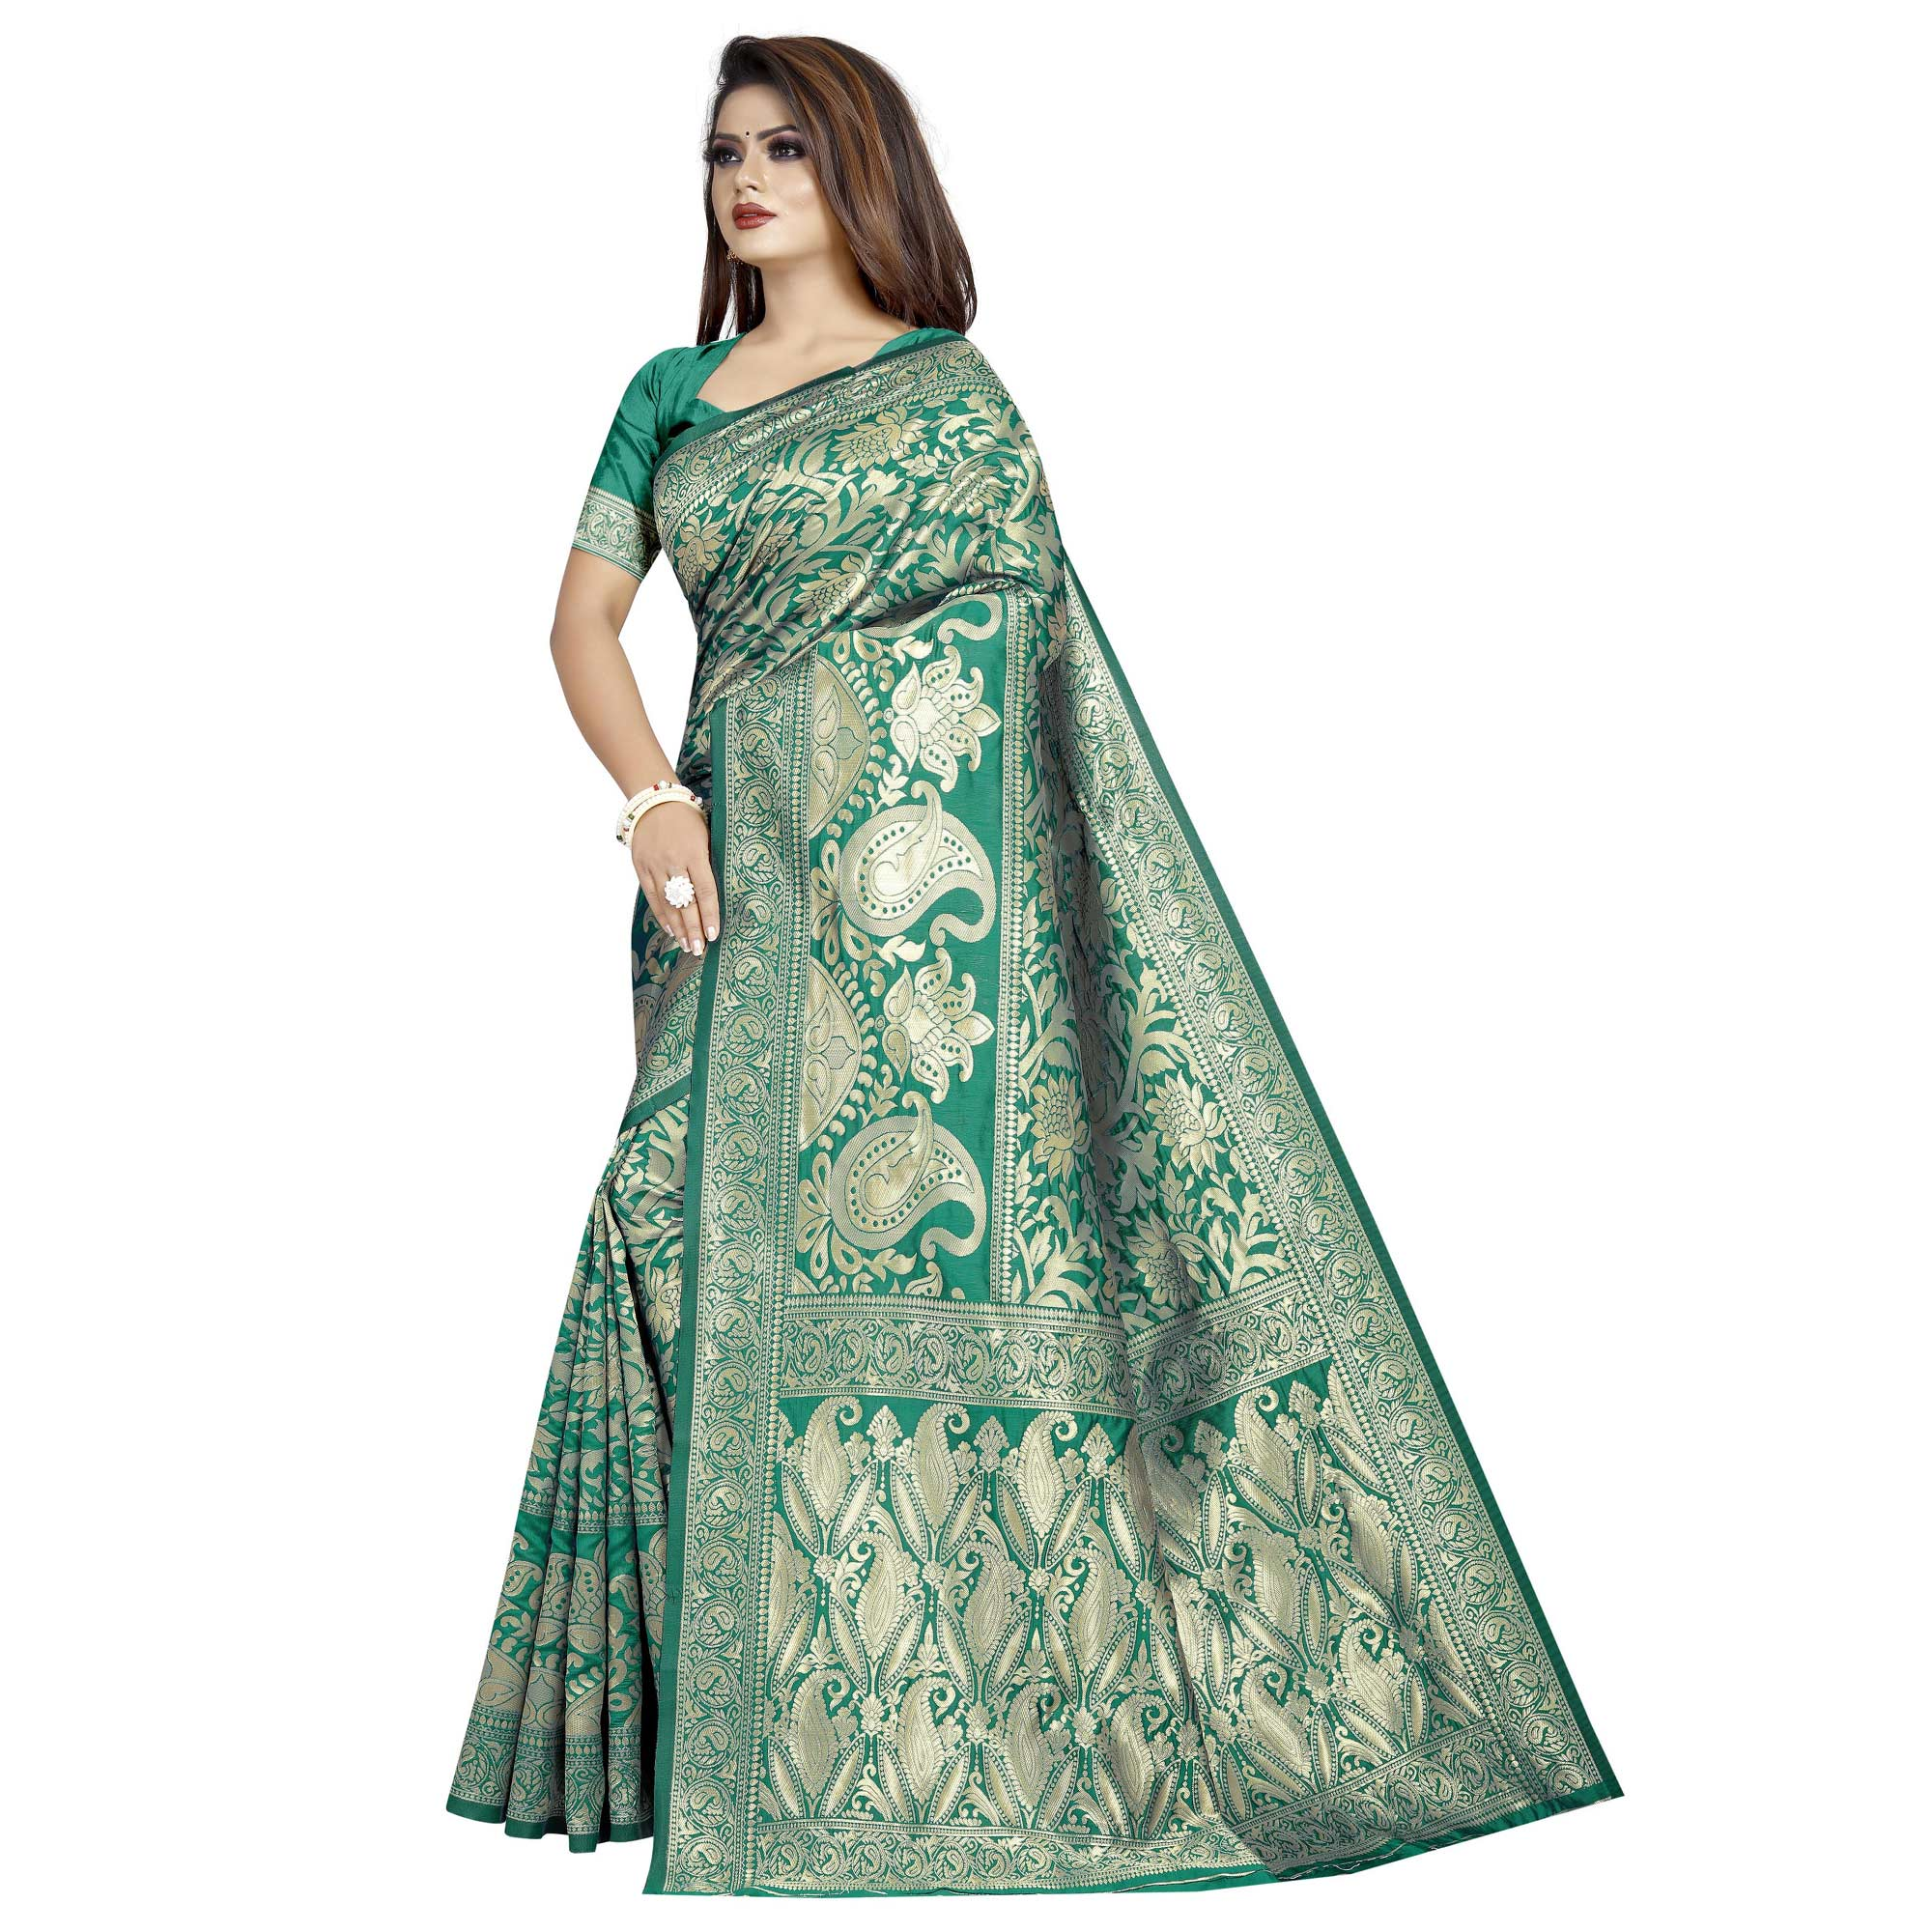 Intricate Turquoise Green Colored Festive Wear Woven Cotton Silk Saree